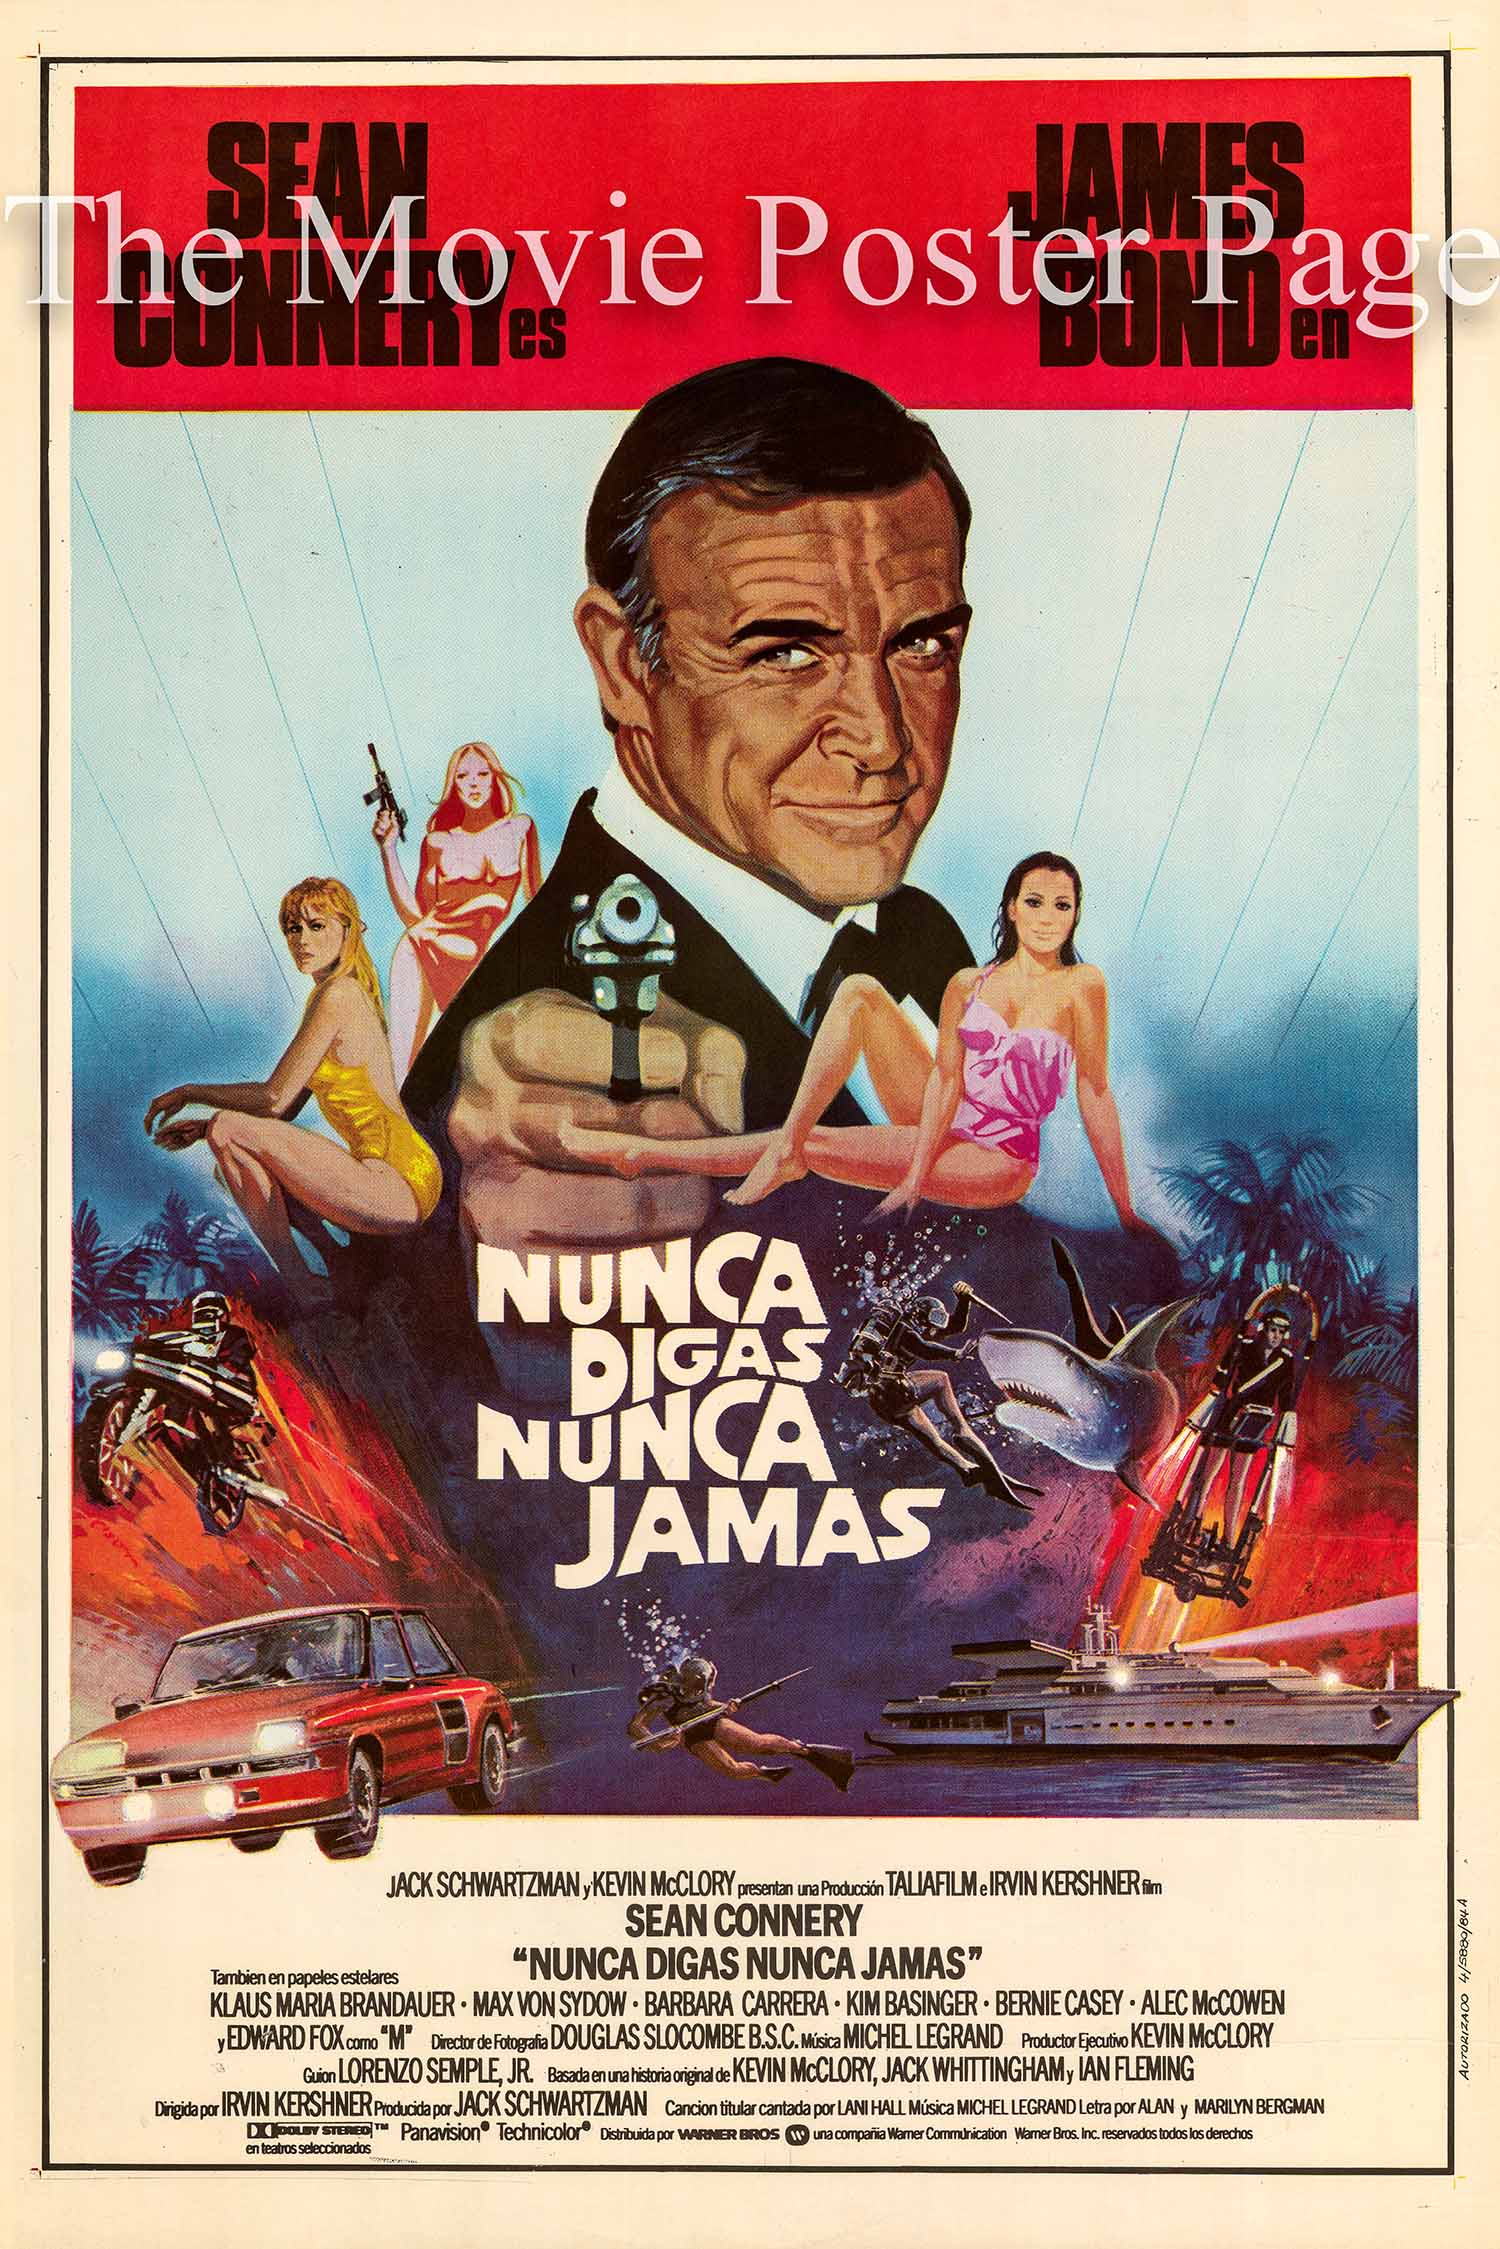 Pictured is an Argentine promotional poster for the 1983 Irvin Kershner film Never Say Never Again starring Sean Connery as James Bond.